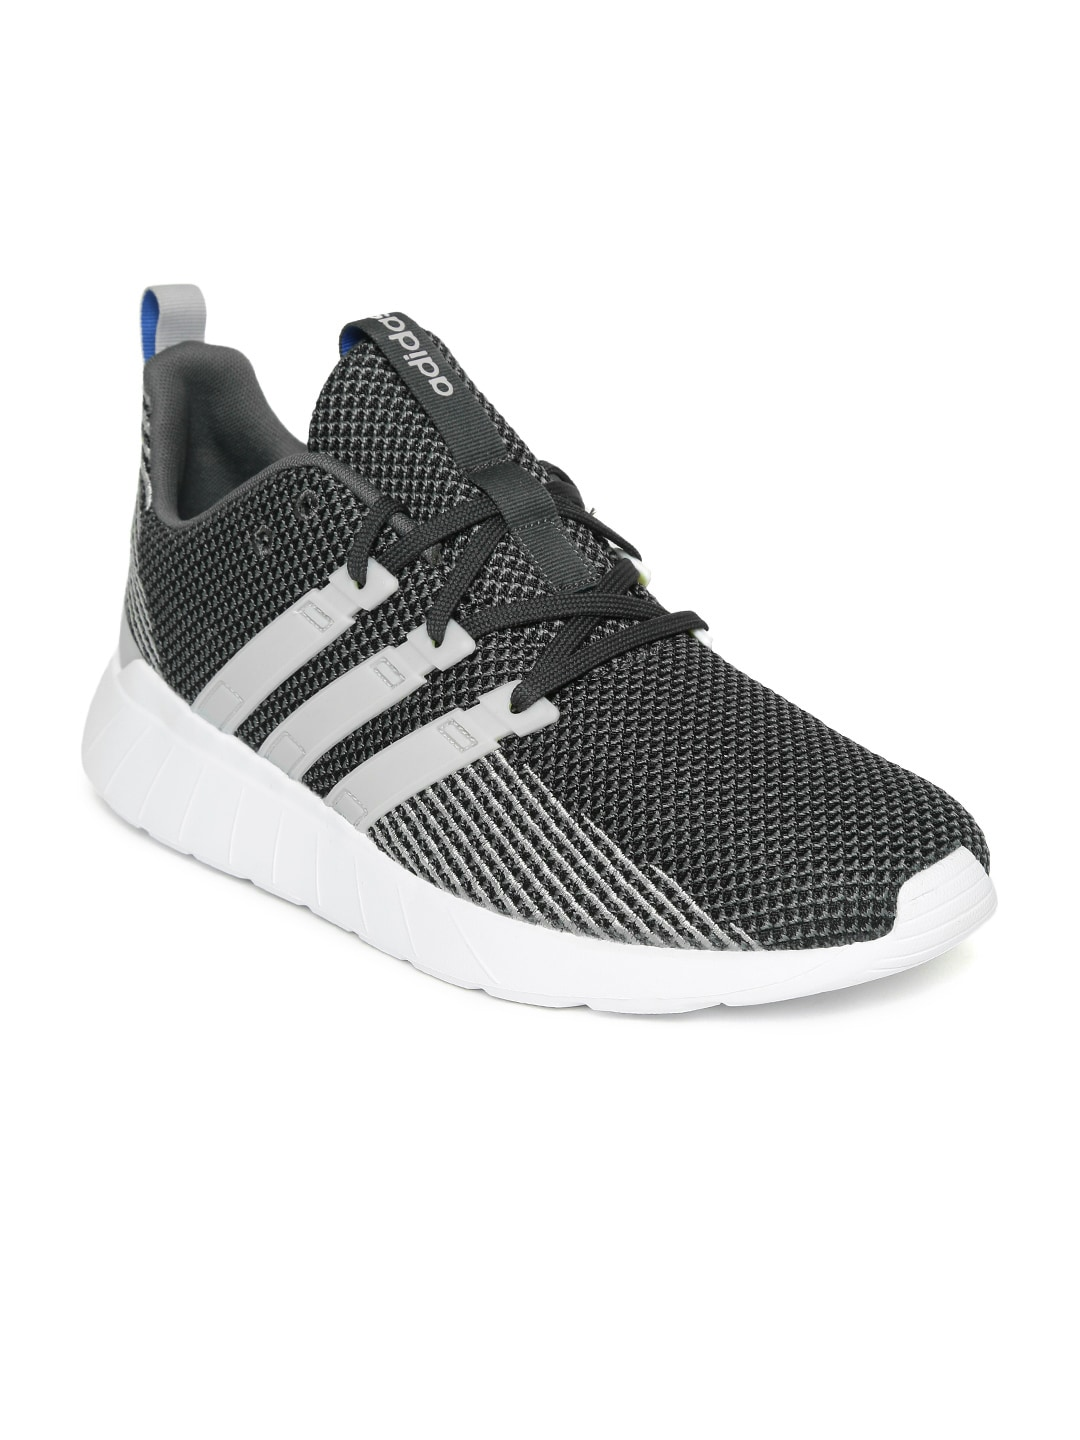 buy popular 6a0d7 f6a0e Adidas Shoes - Buy Adidas Shoes for Men   Women Online - Myntra